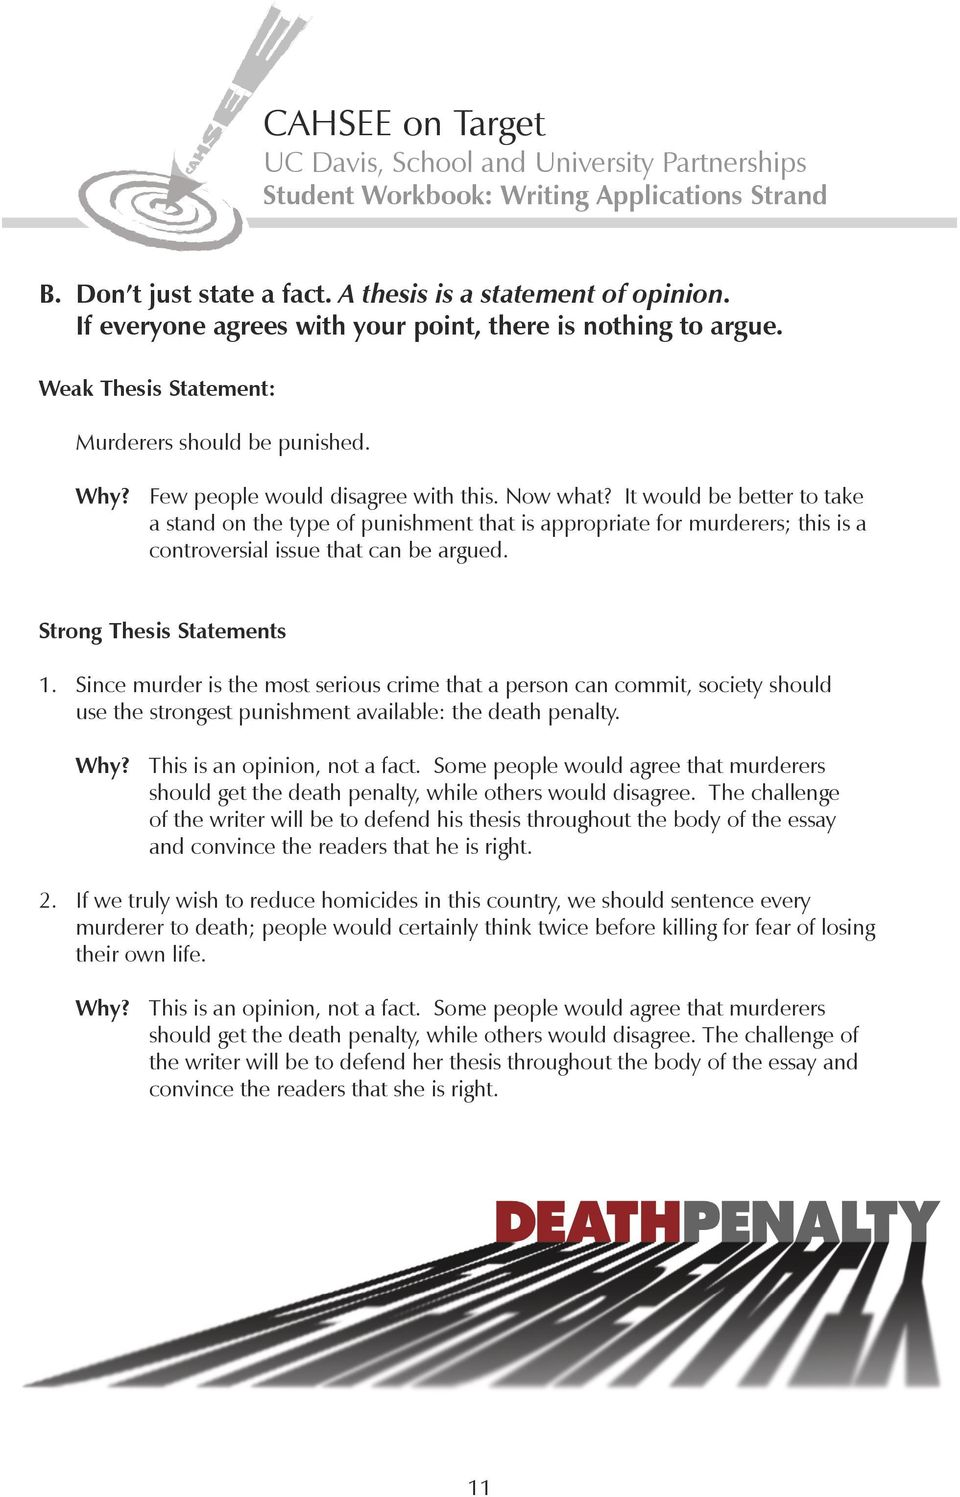 Strong Thesis Statements 1. Since murder is the most serious crime that a person can commit, society should use the strongest punishment available: the death penalty. Why?